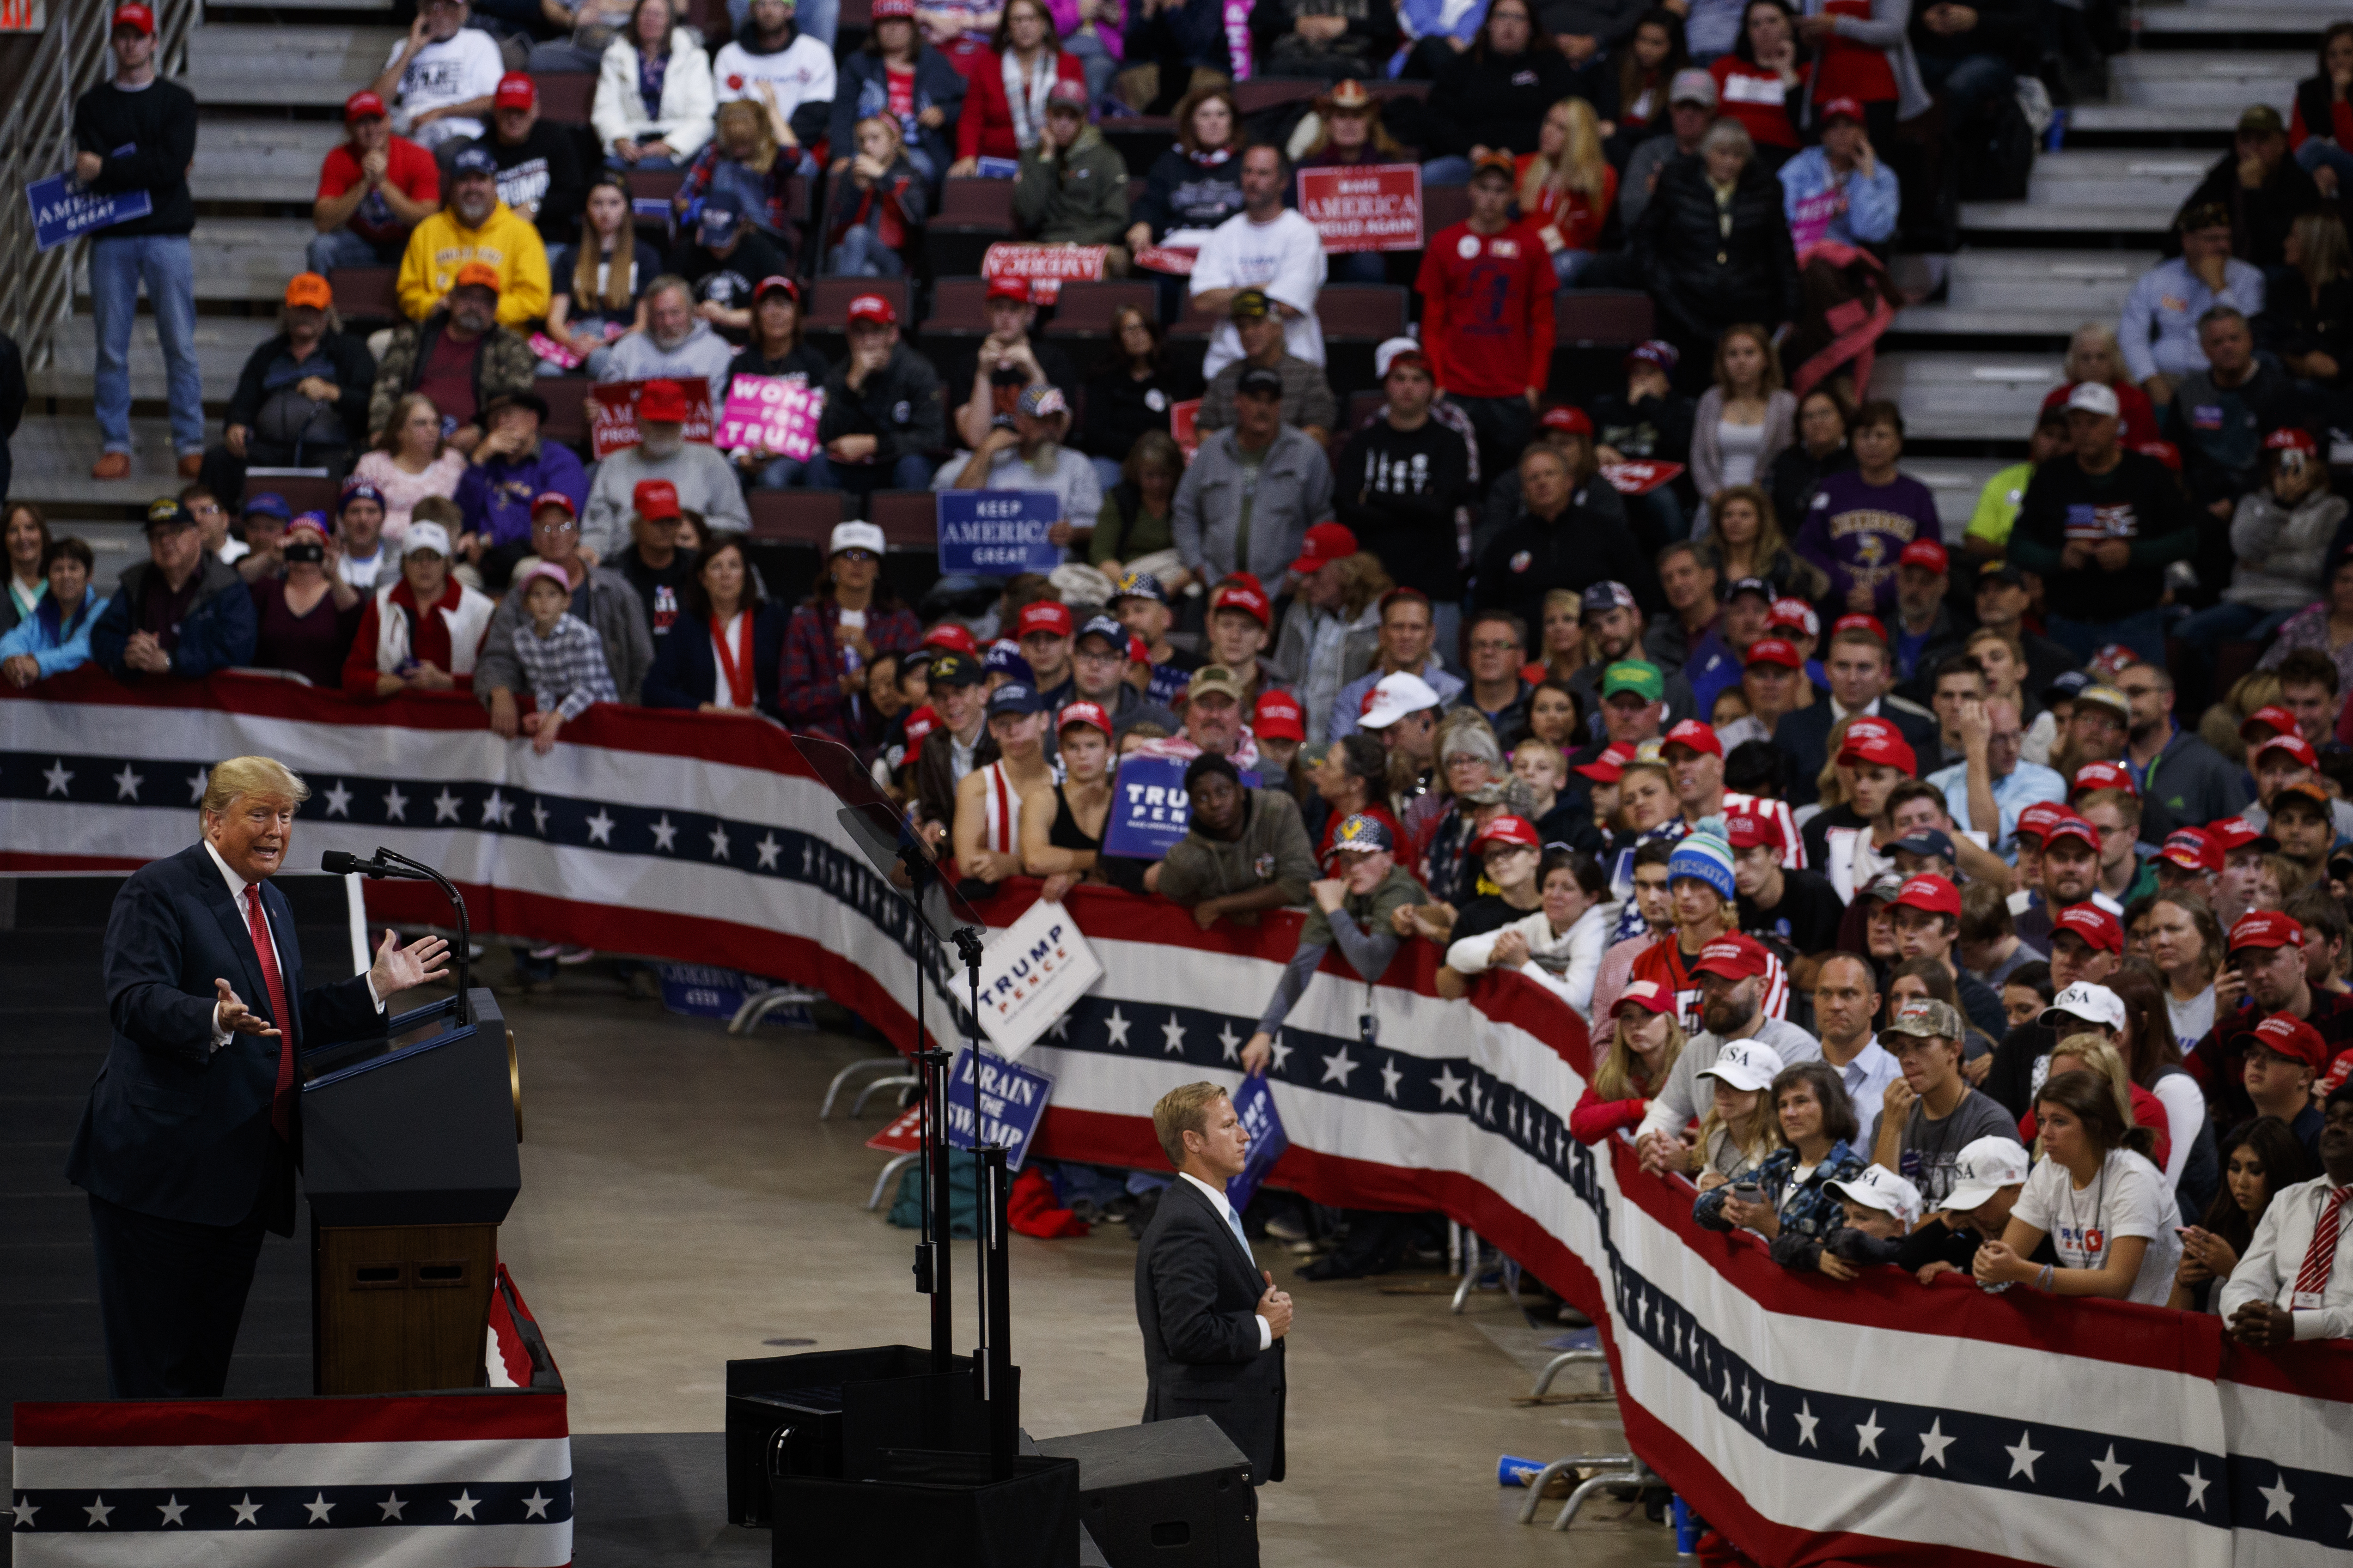 President Donald Trump speaks during a campaign rally at the Mayo Civic Center, Oct. 4, 2018, in Rochester, Minn.